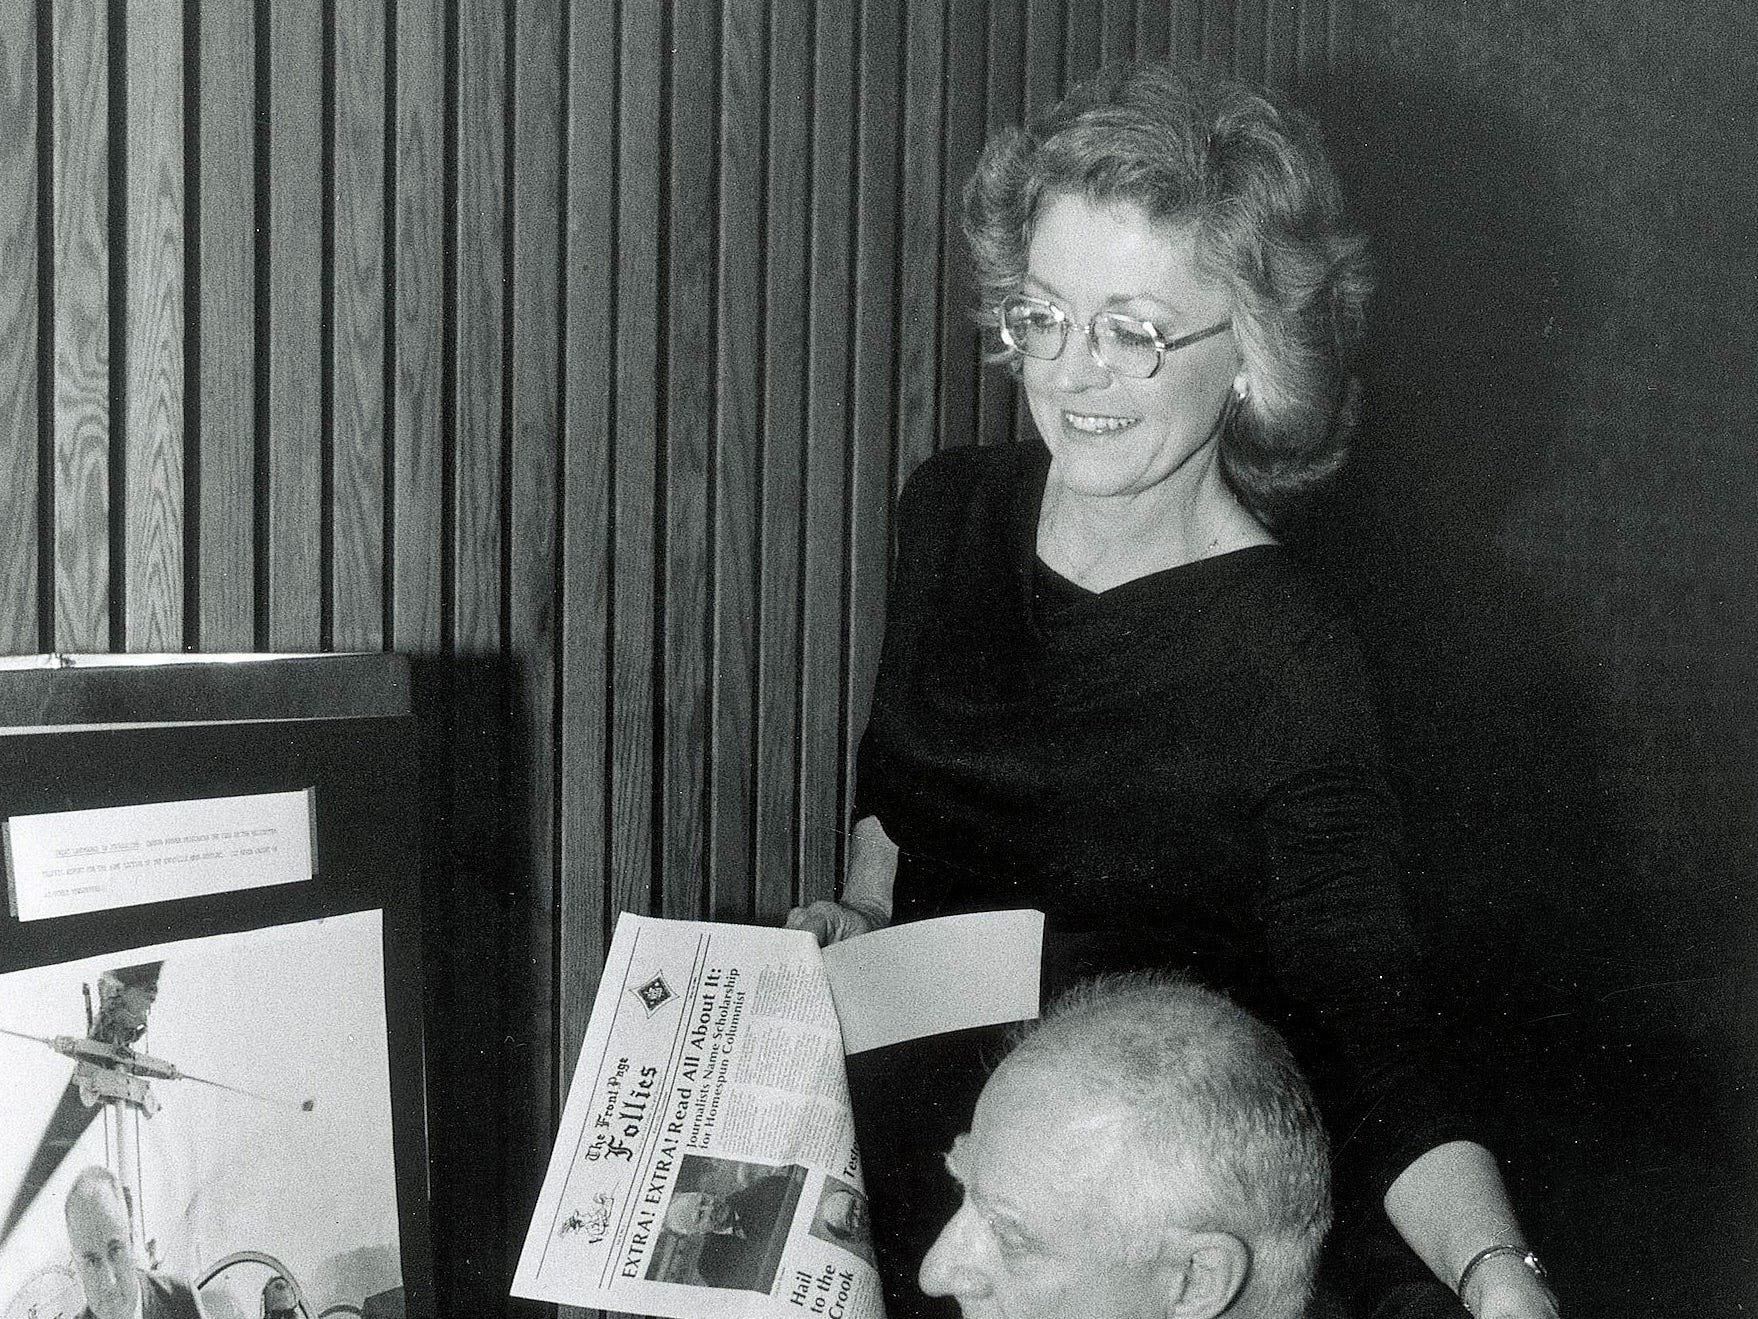 Knoxville News Sentinel staff writers Barbara Asbury and Carson Brewer promote the Front Page Follies May 19, 1984. Brewer passed away Jan. 15, 2003. Asbury died Jan. 2, 2011.